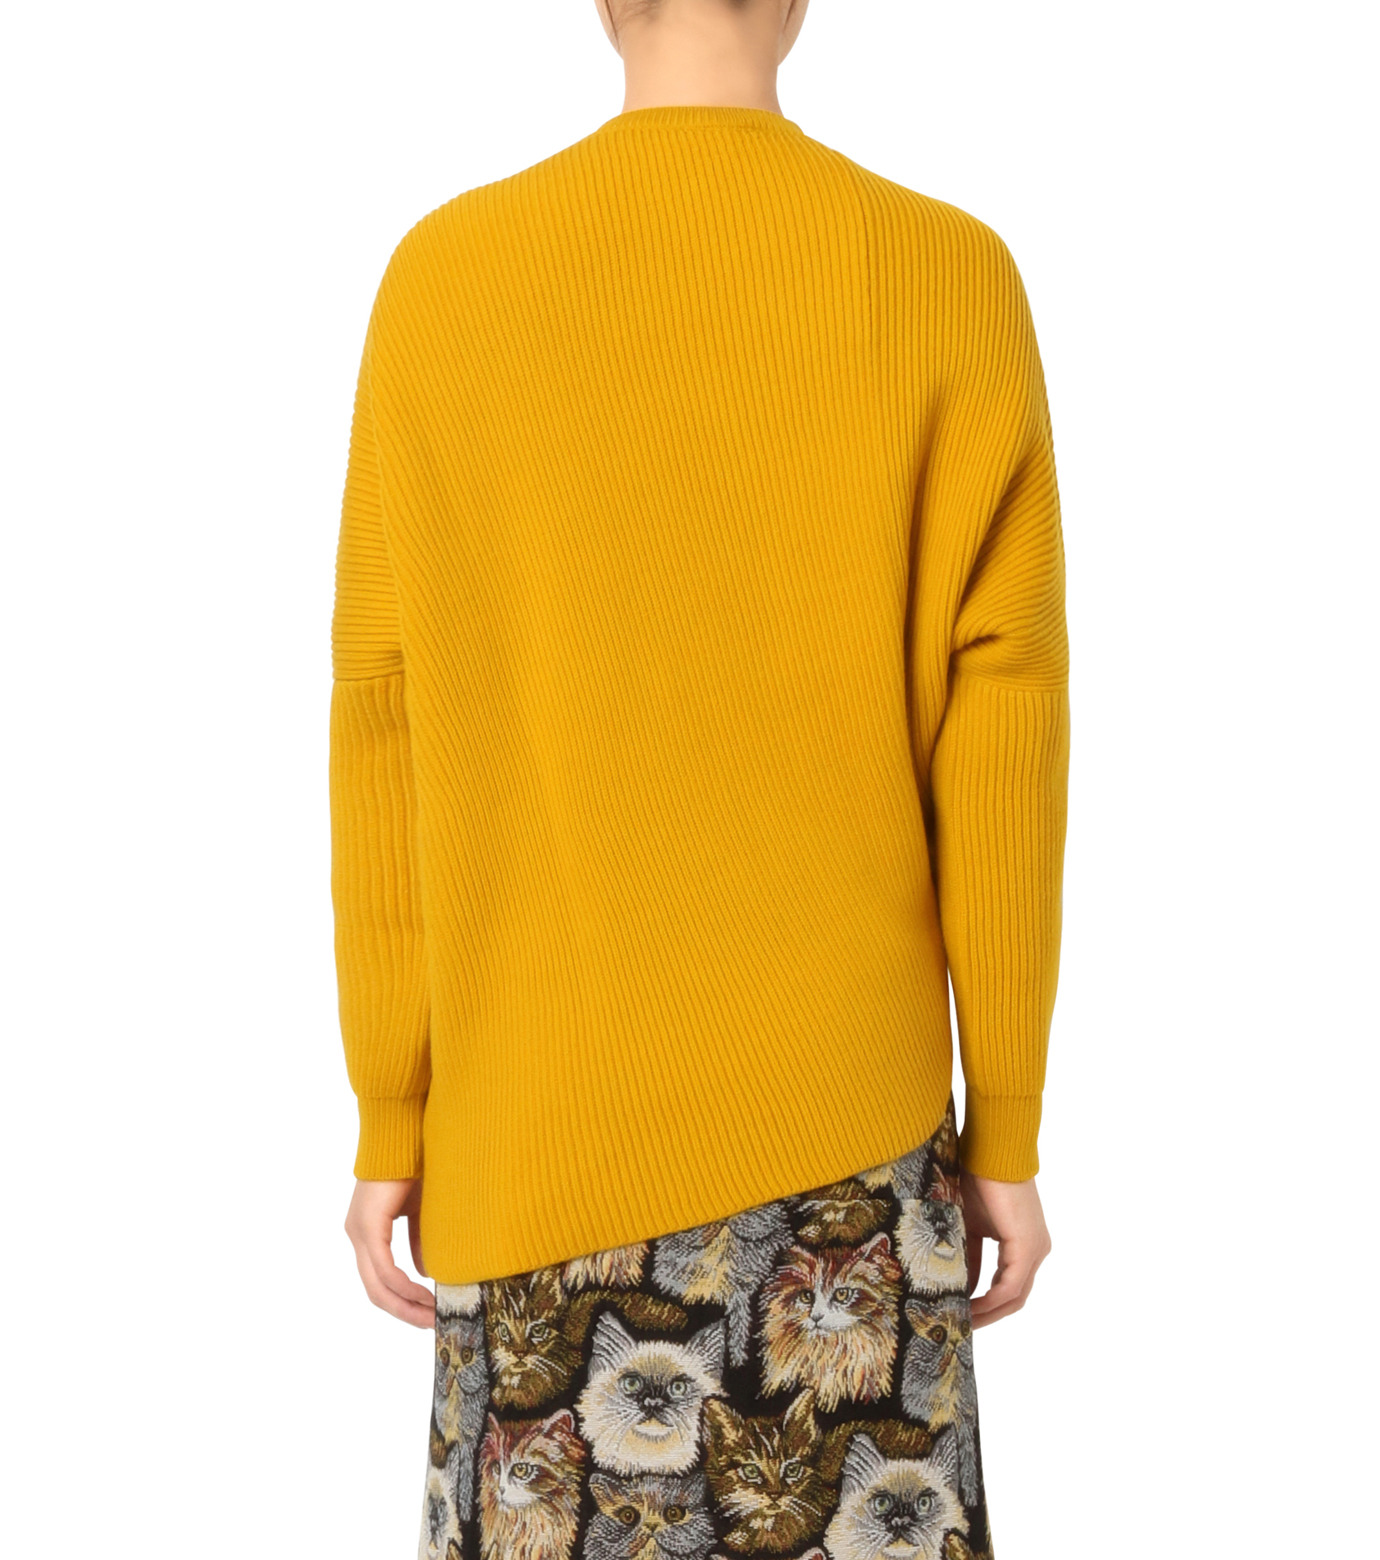 Stella McCartney(ステラマッカートニー)のClean Ribs Crew Neck Jumper-YELLOW(ニット/knit)-431737-S1672-32 拡大詳細画像2